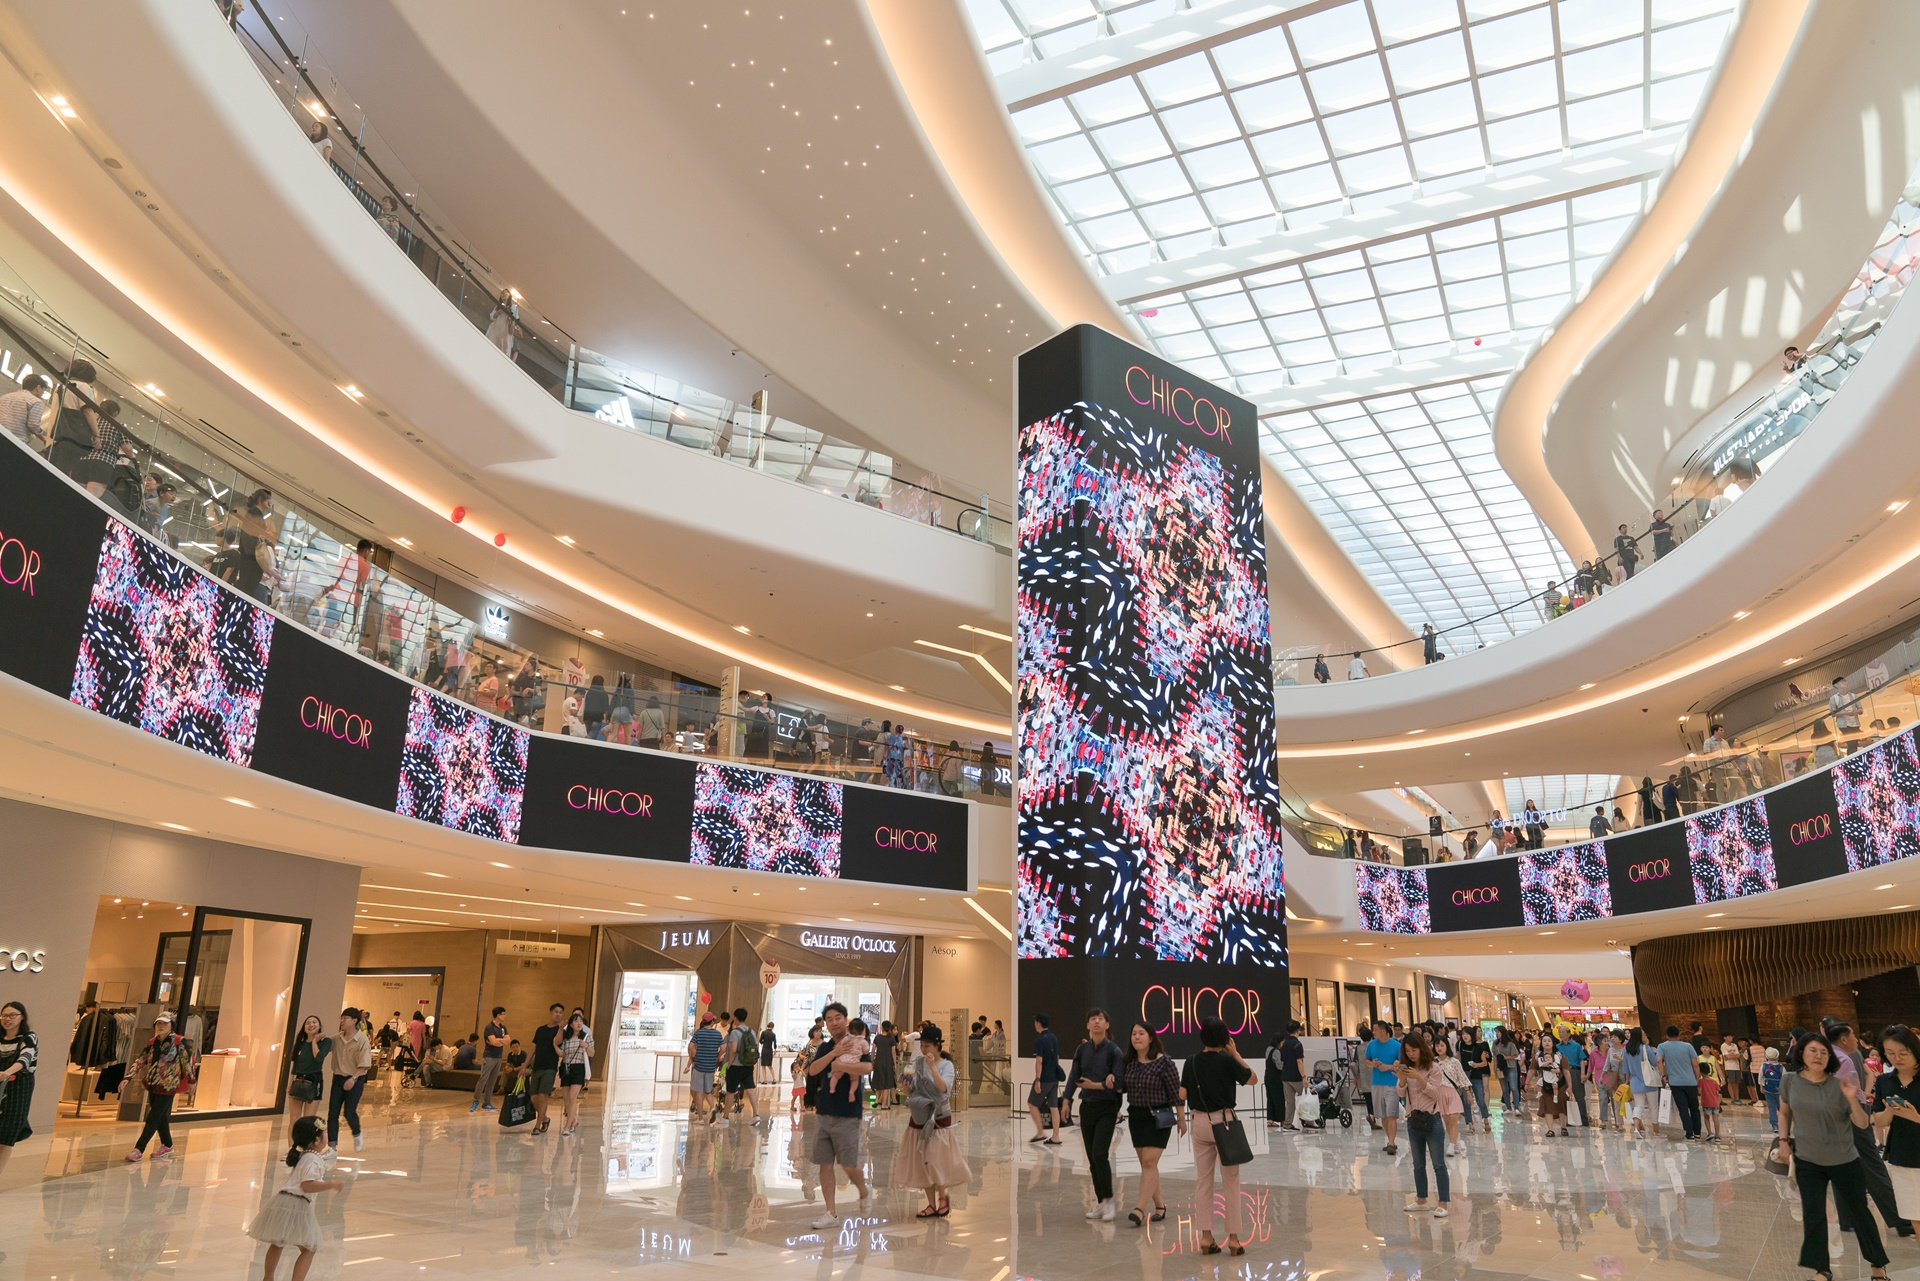 Massive Starfield Entertainment Amp Shopping Complex Selects